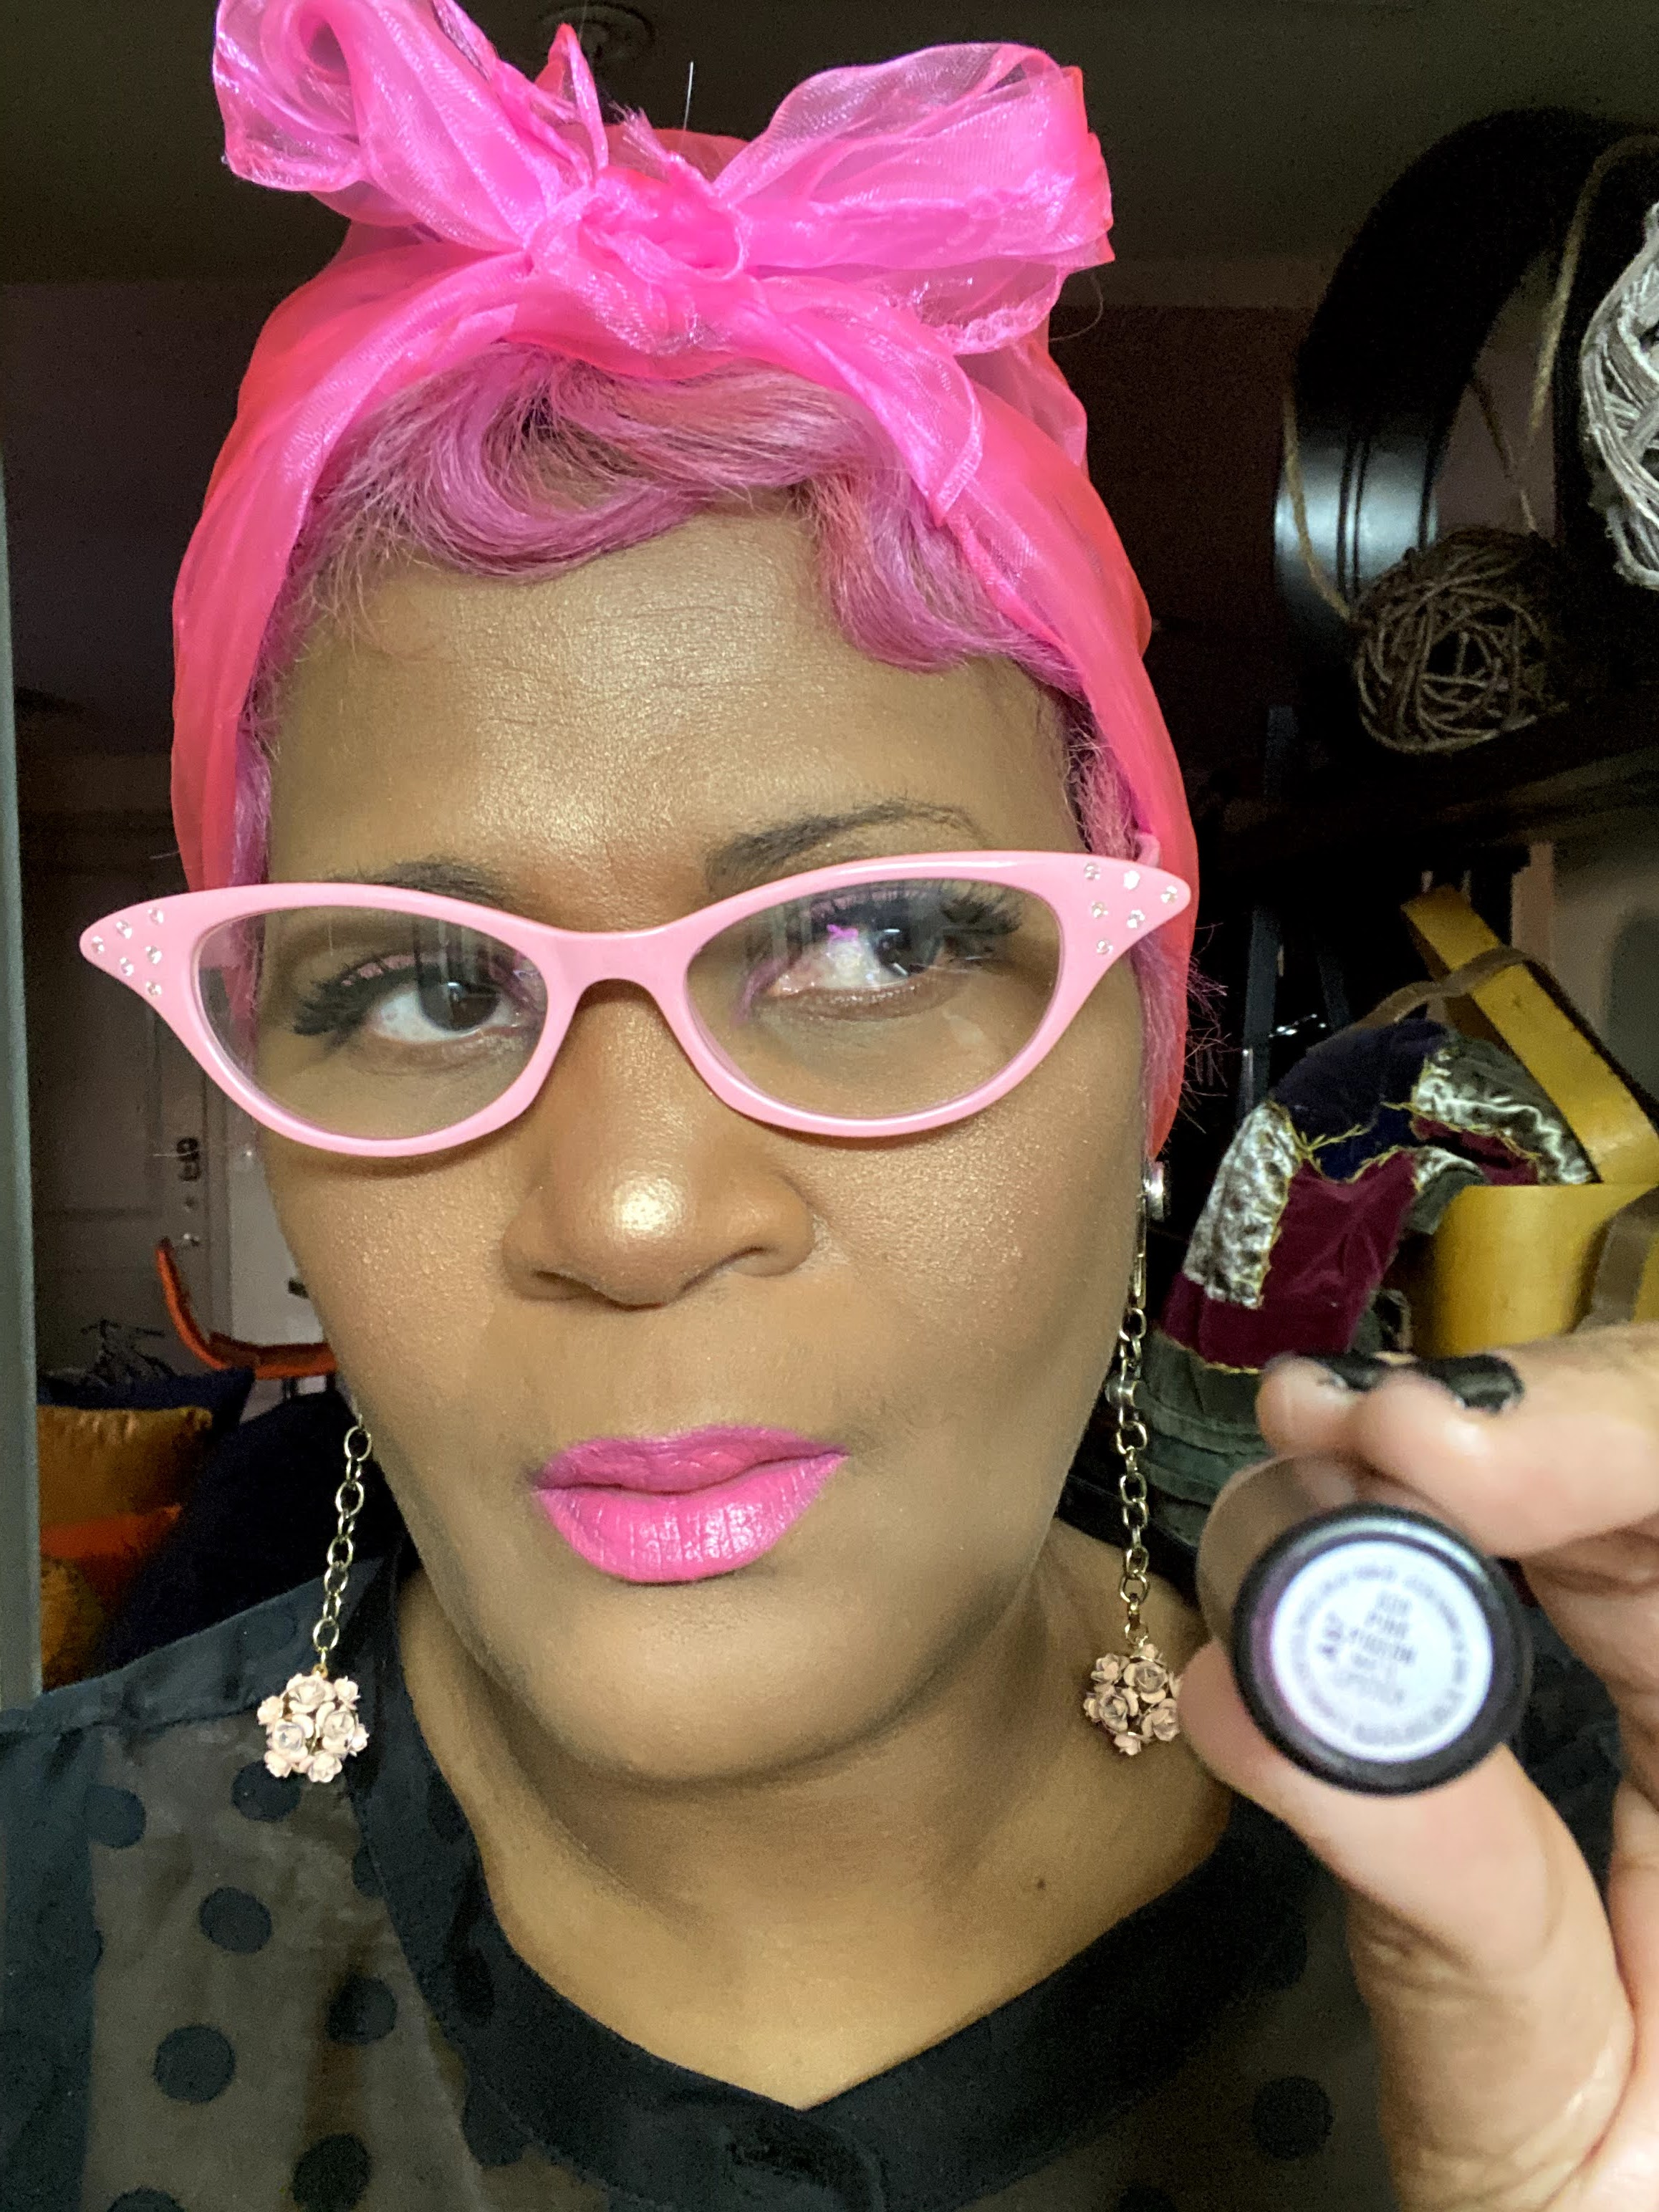 Tangie Bell sharing her review on Pink Pigeon Lipstick